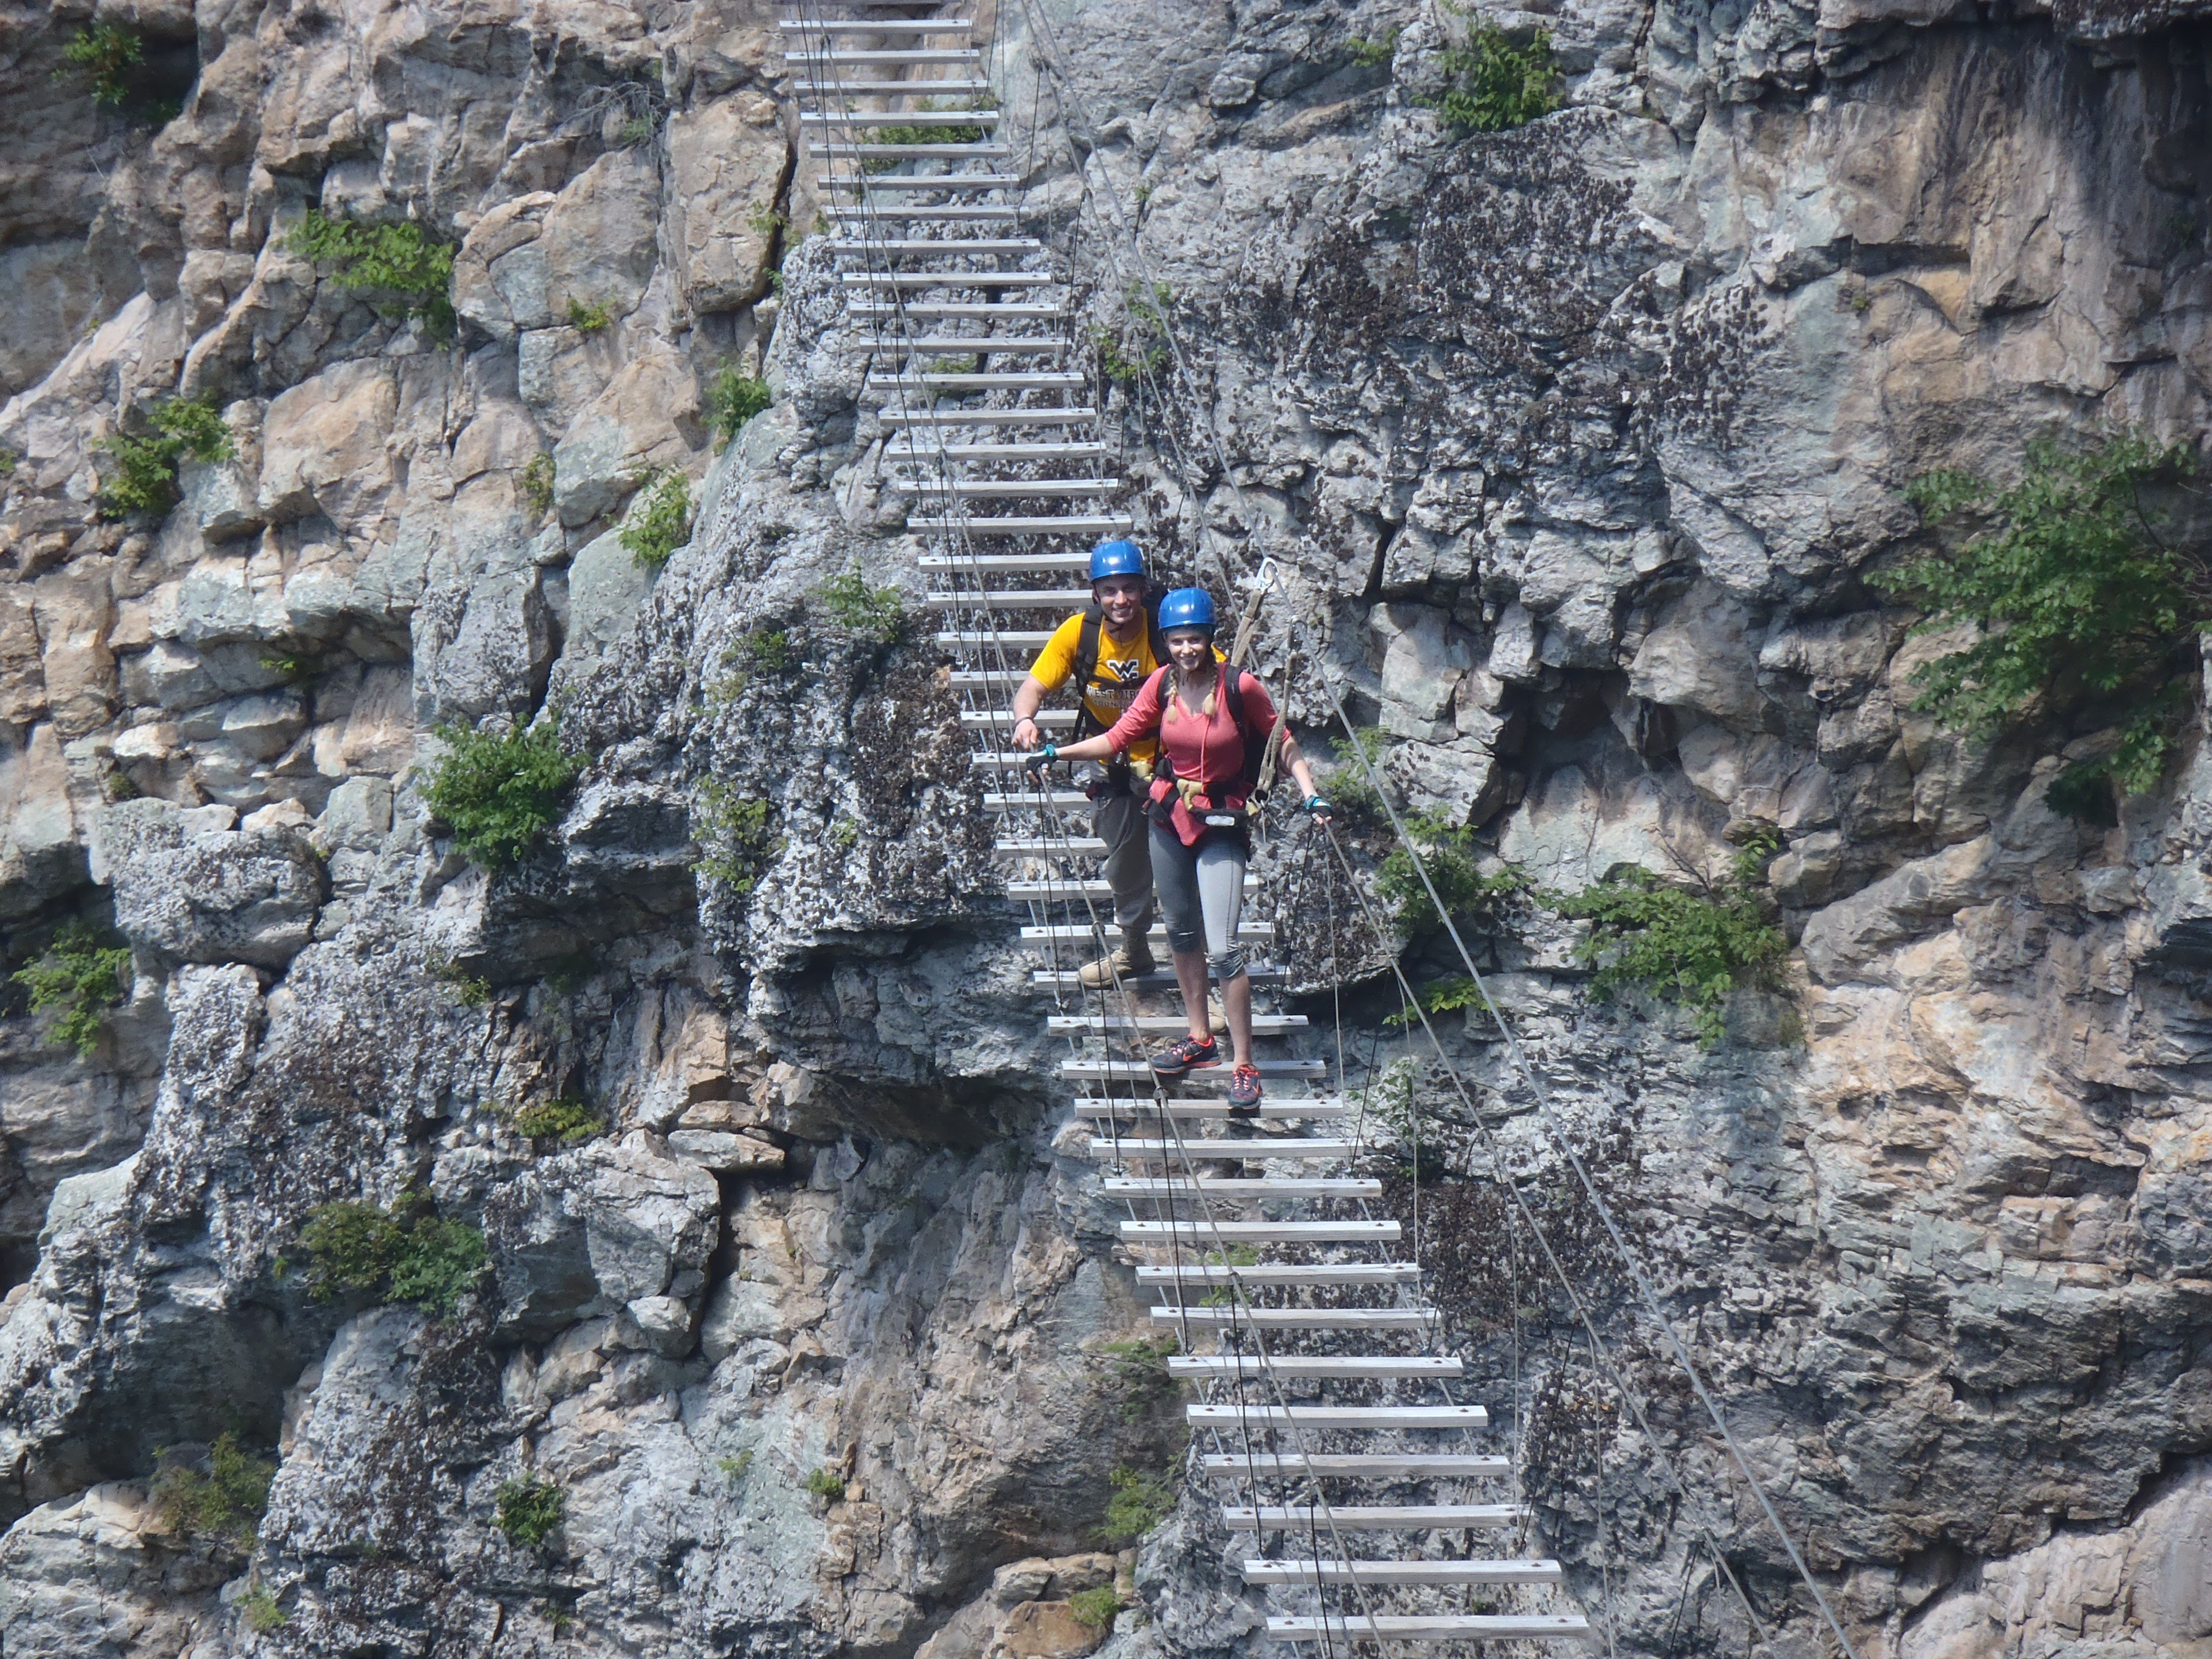 hanging out on the via ferrata bridge at nrocks outdoor